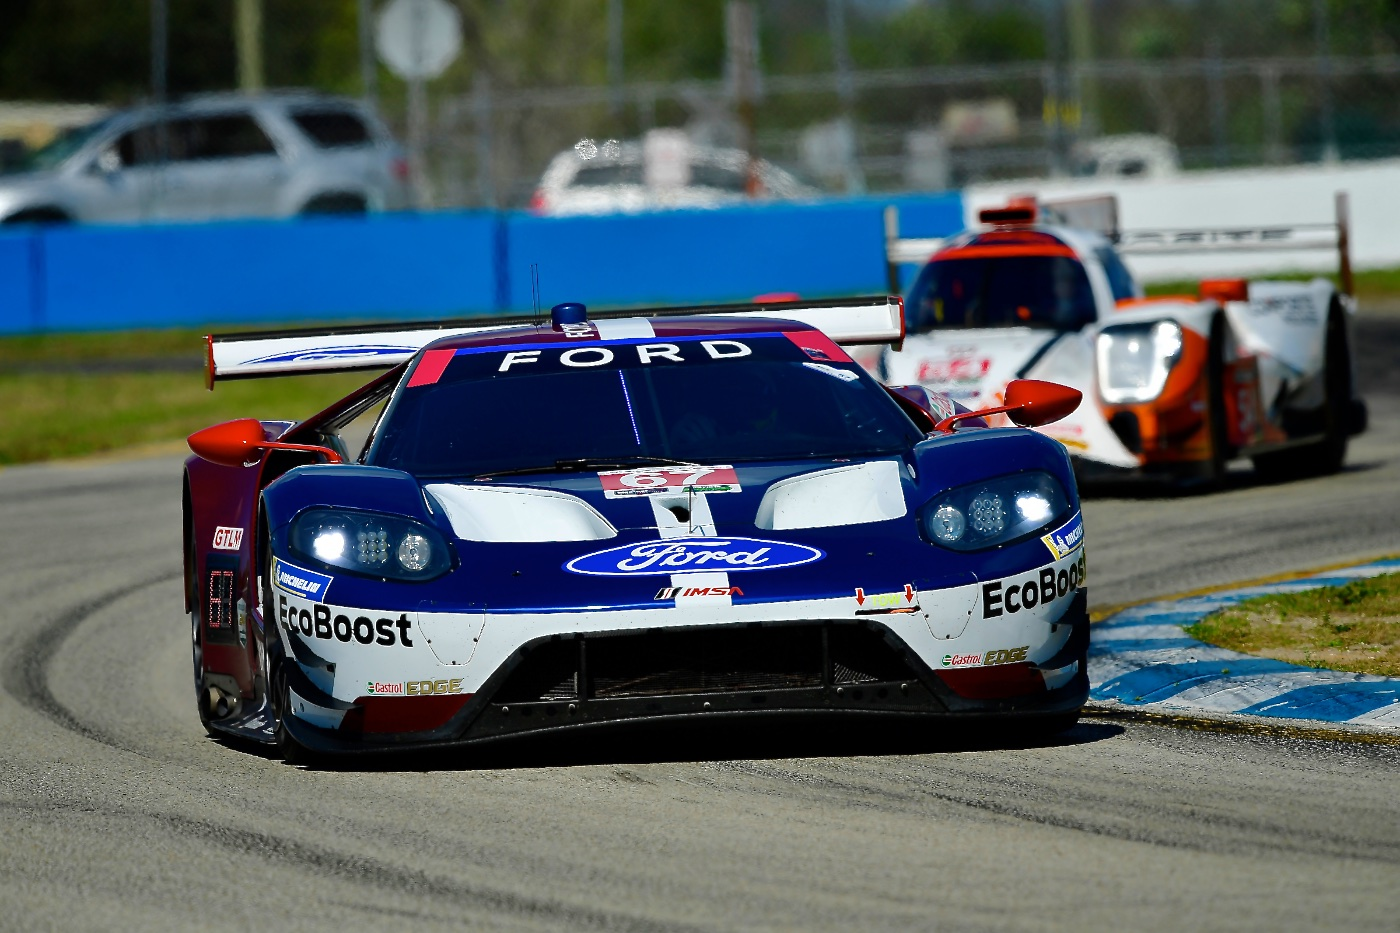 Sebring 12 on-track schedule, air times